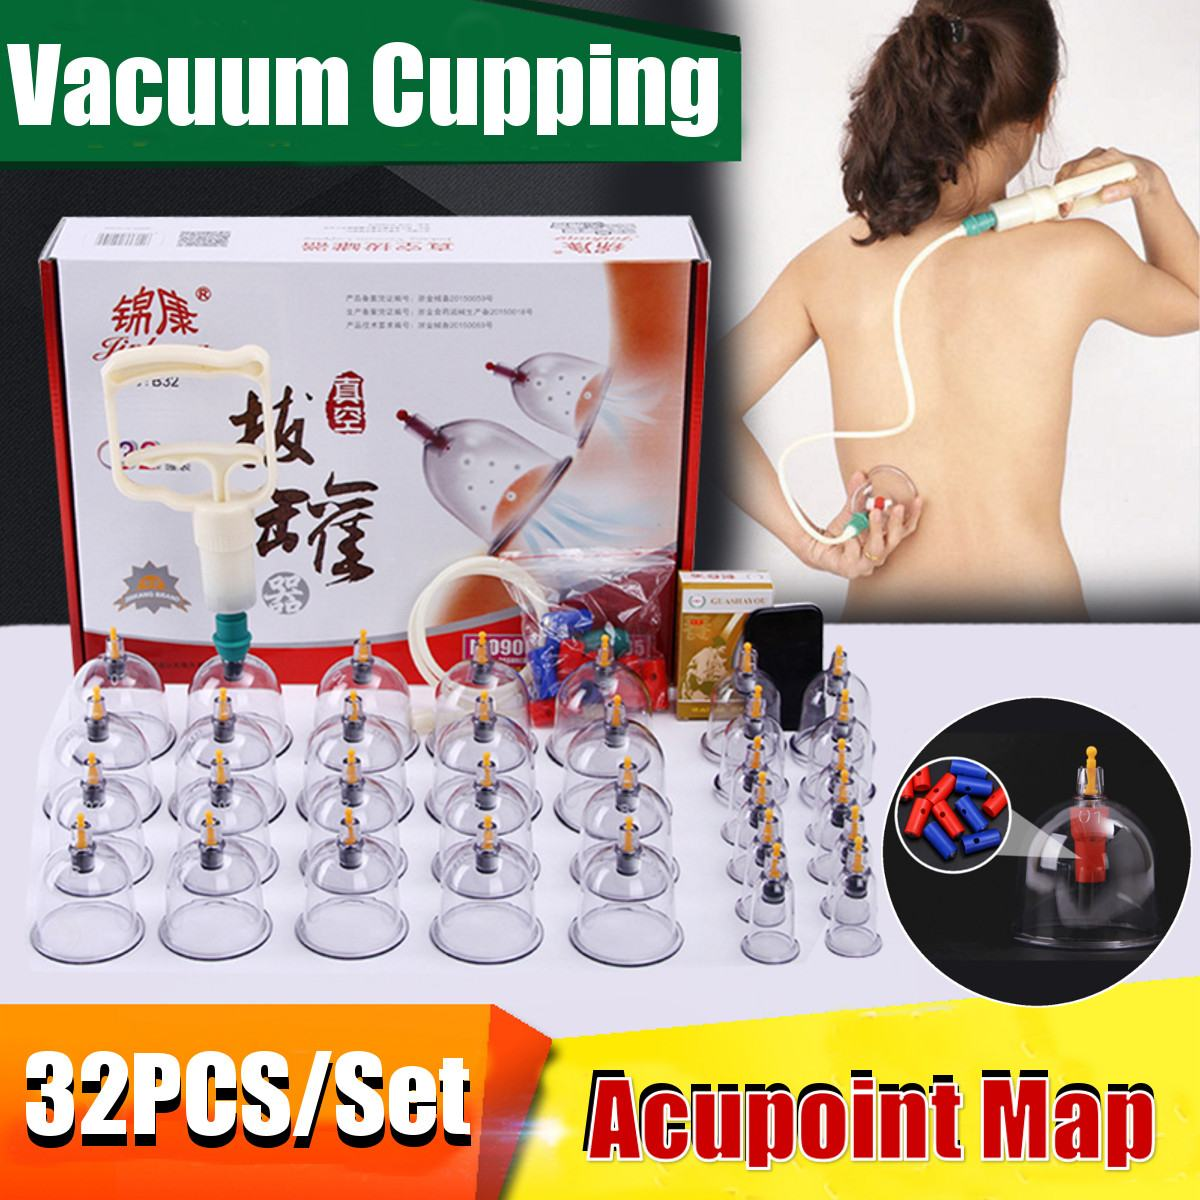 32 Cans Cups Chinese Vacuum Cupping Kit Pull Out Vacuum Apparatus Therapy Relax Massagers Curve Suction Pumps